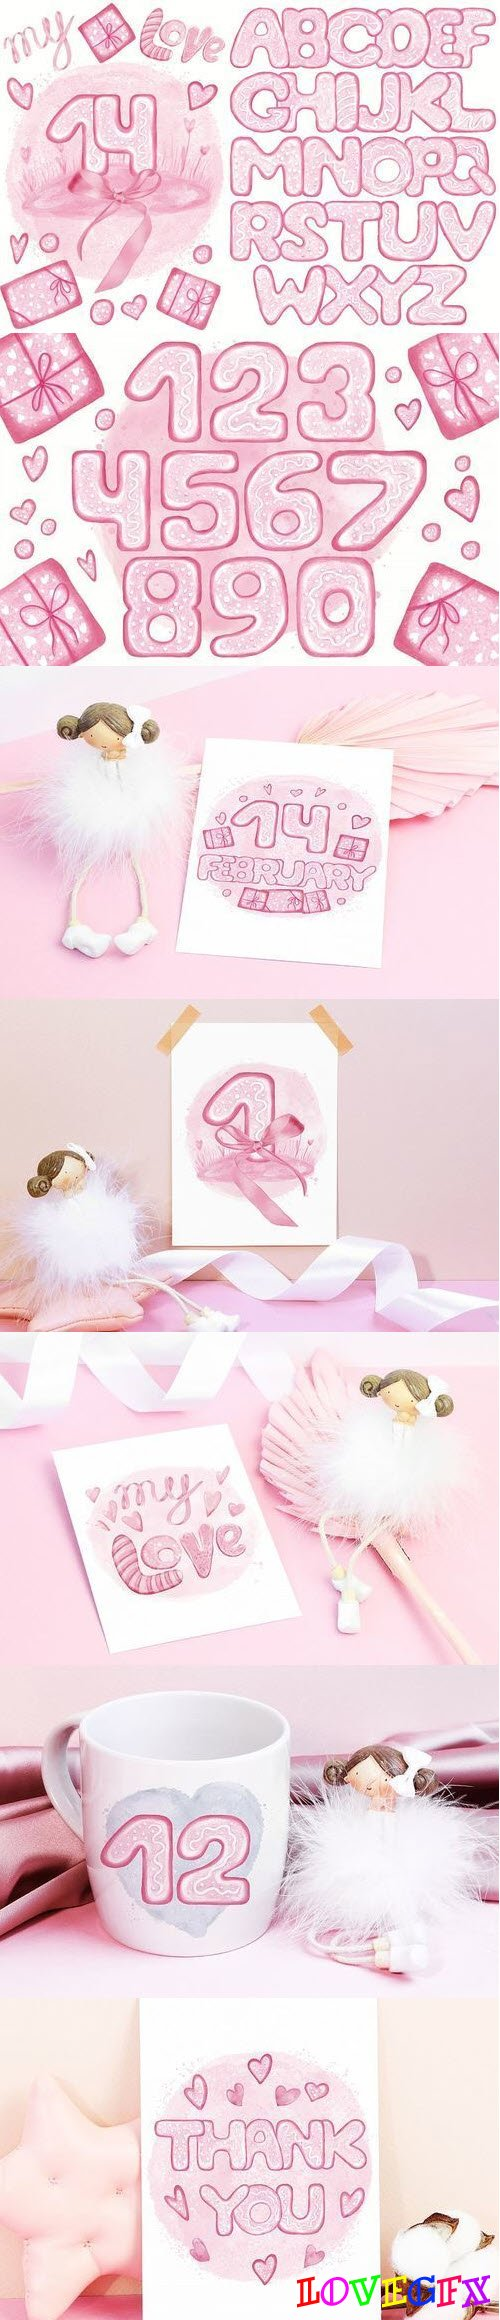 Pink Lovely Font Set. Valentine's Day. Food Letters Numbers - 415864